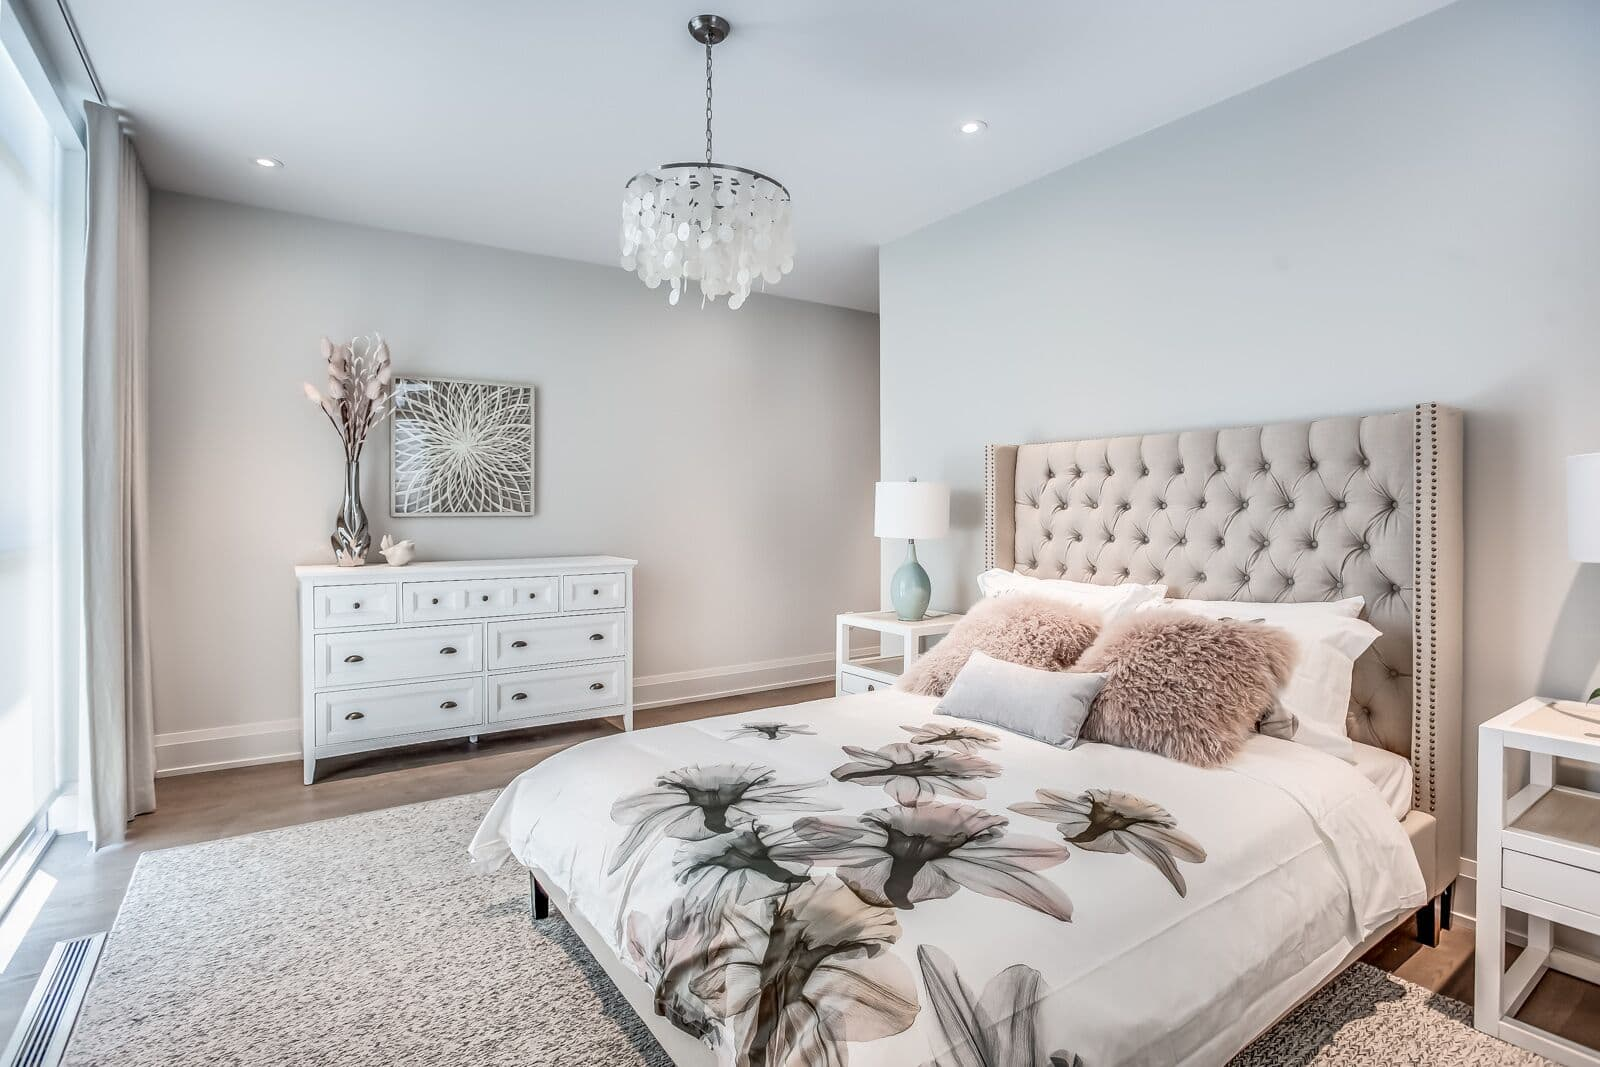 Bedroom of model home at Friday Harbour